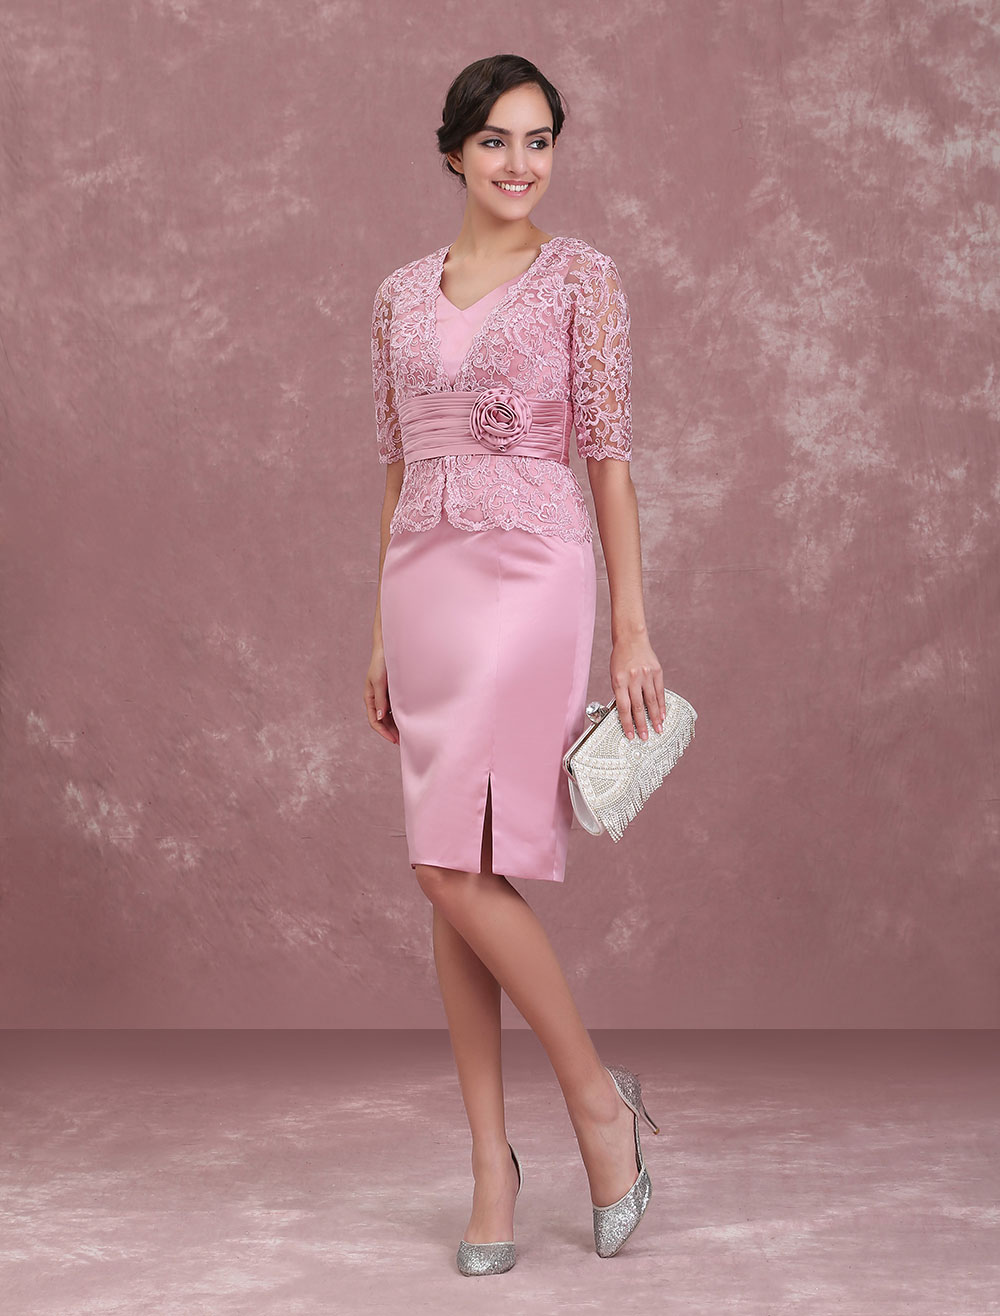 Mother Of The Bride Dresses Cameo Pink Wedding Guest Dress Short Sheath Lace V Neck Flowers Pleated Wedding Party Dress photo